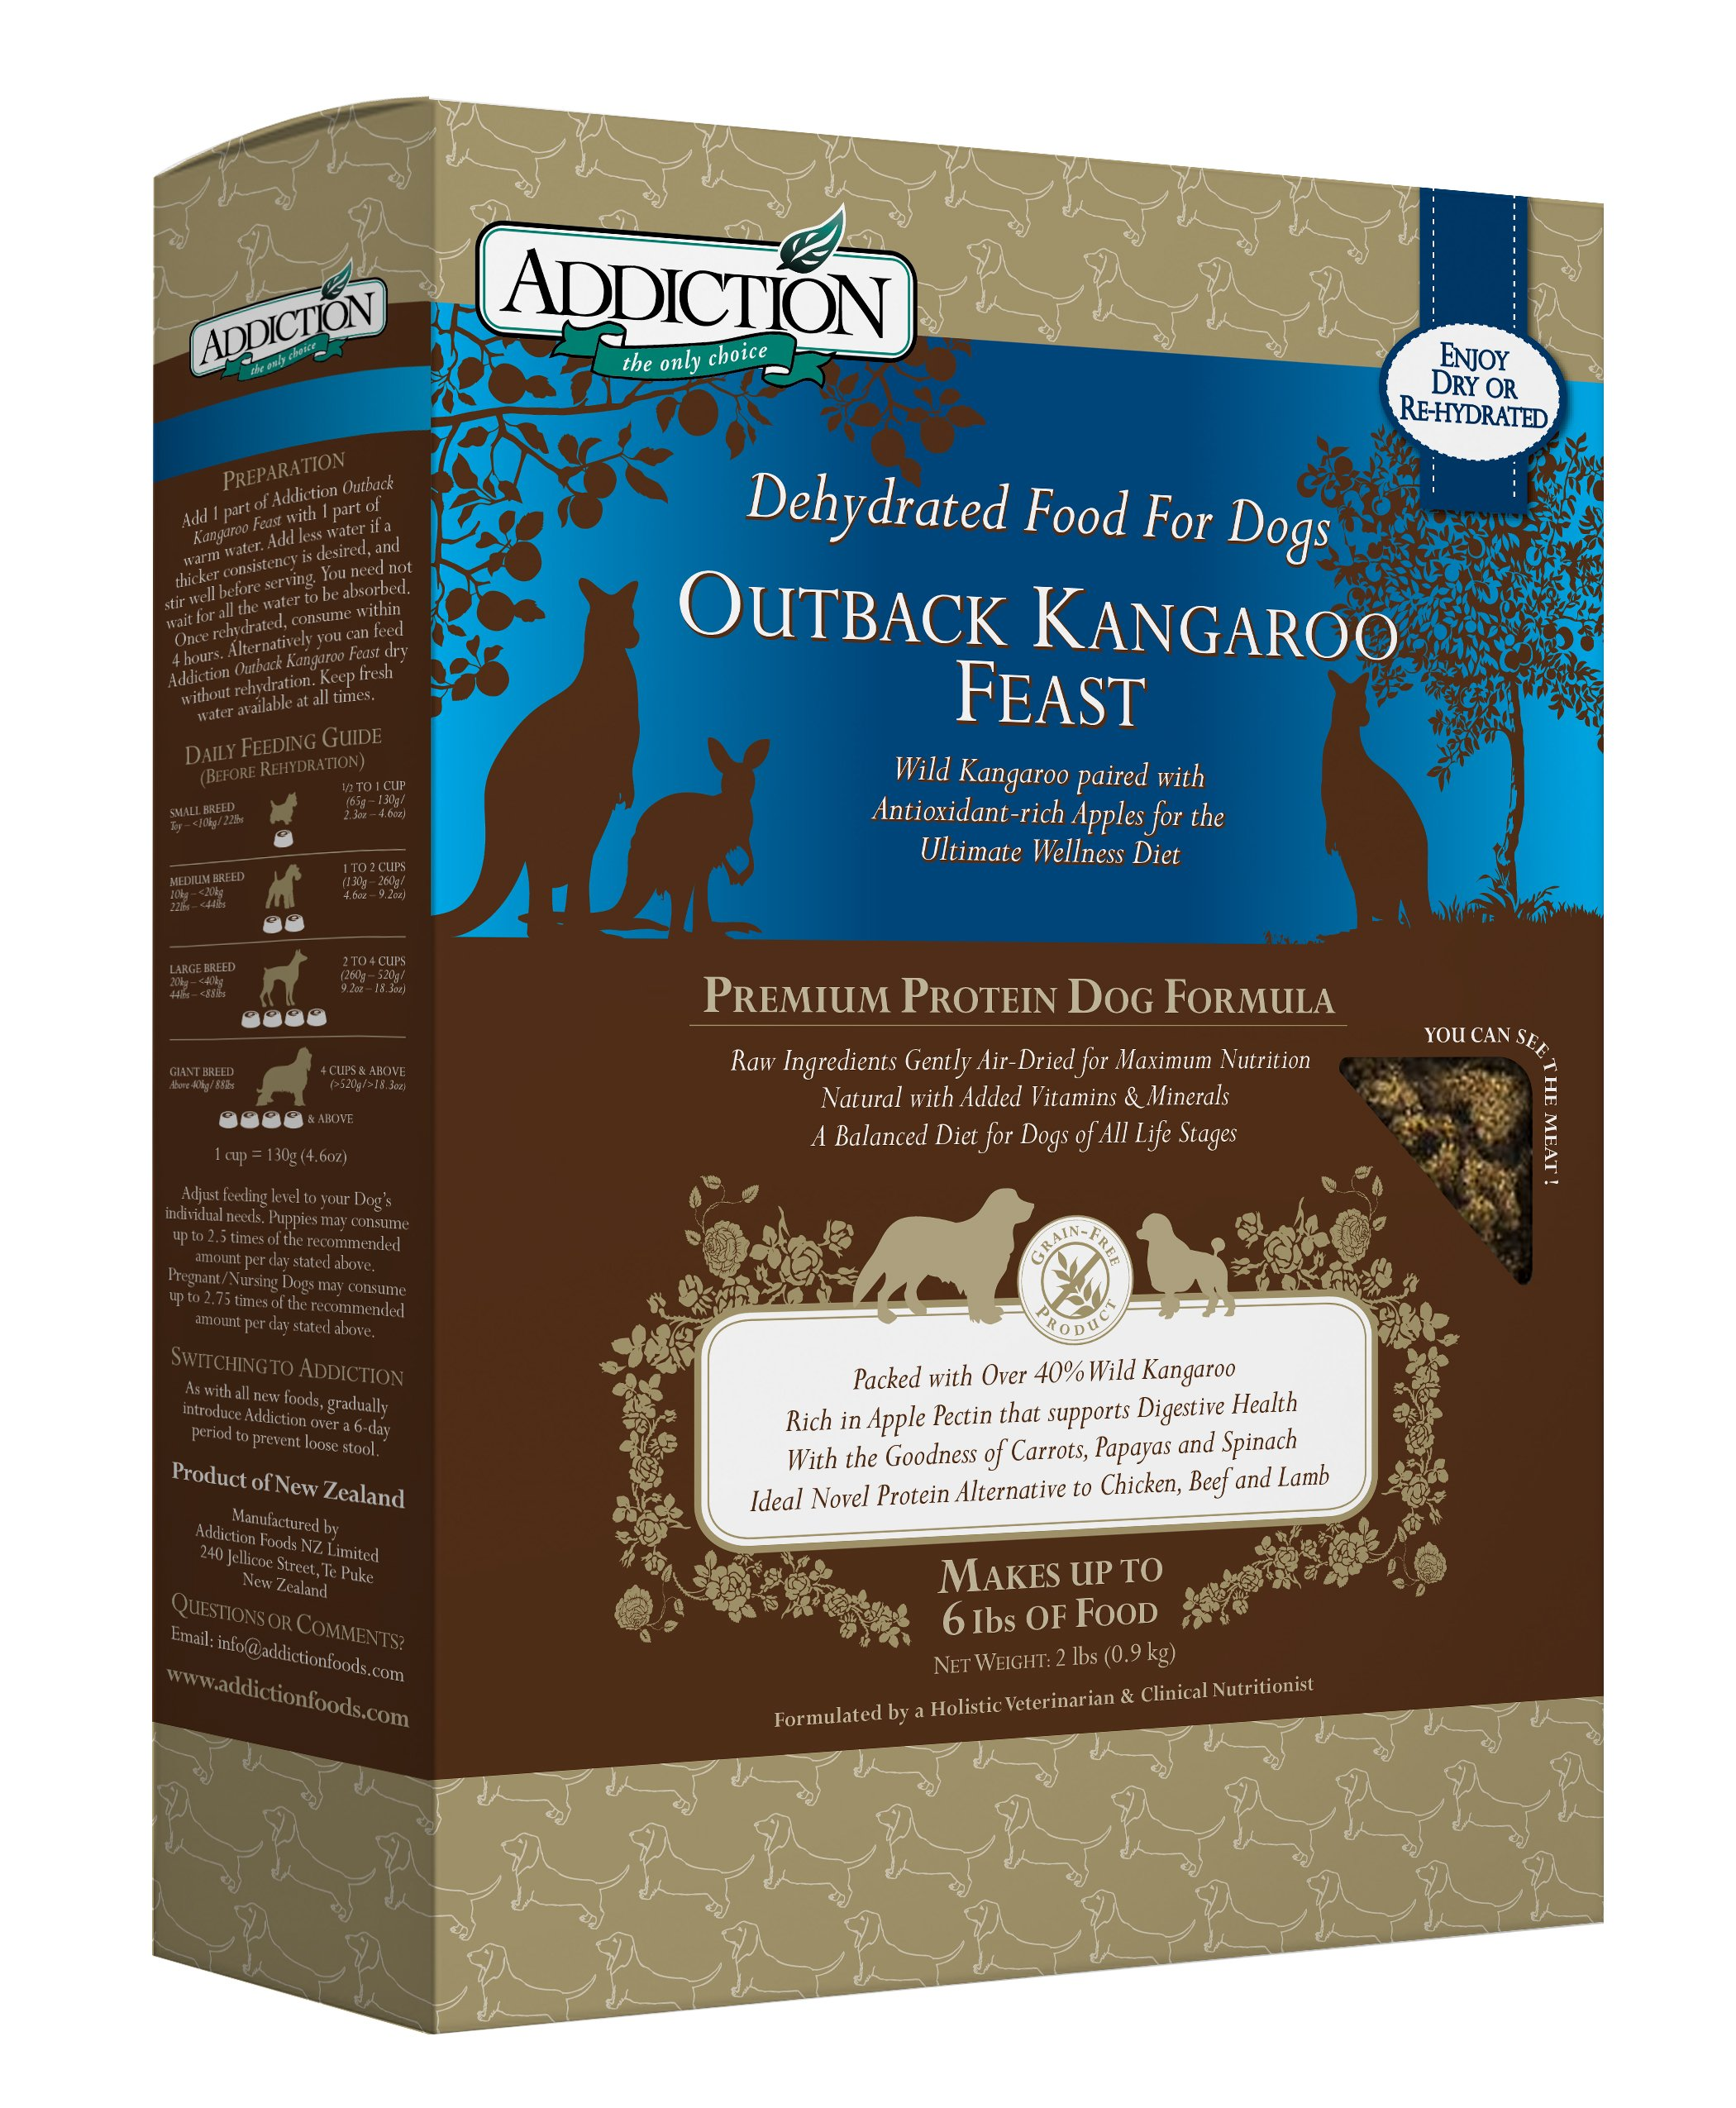 Addiction Outback Kangaroo Feast Grain Free Dehydrated Dog Food, 2 Lb. by Addiction Pet Foods